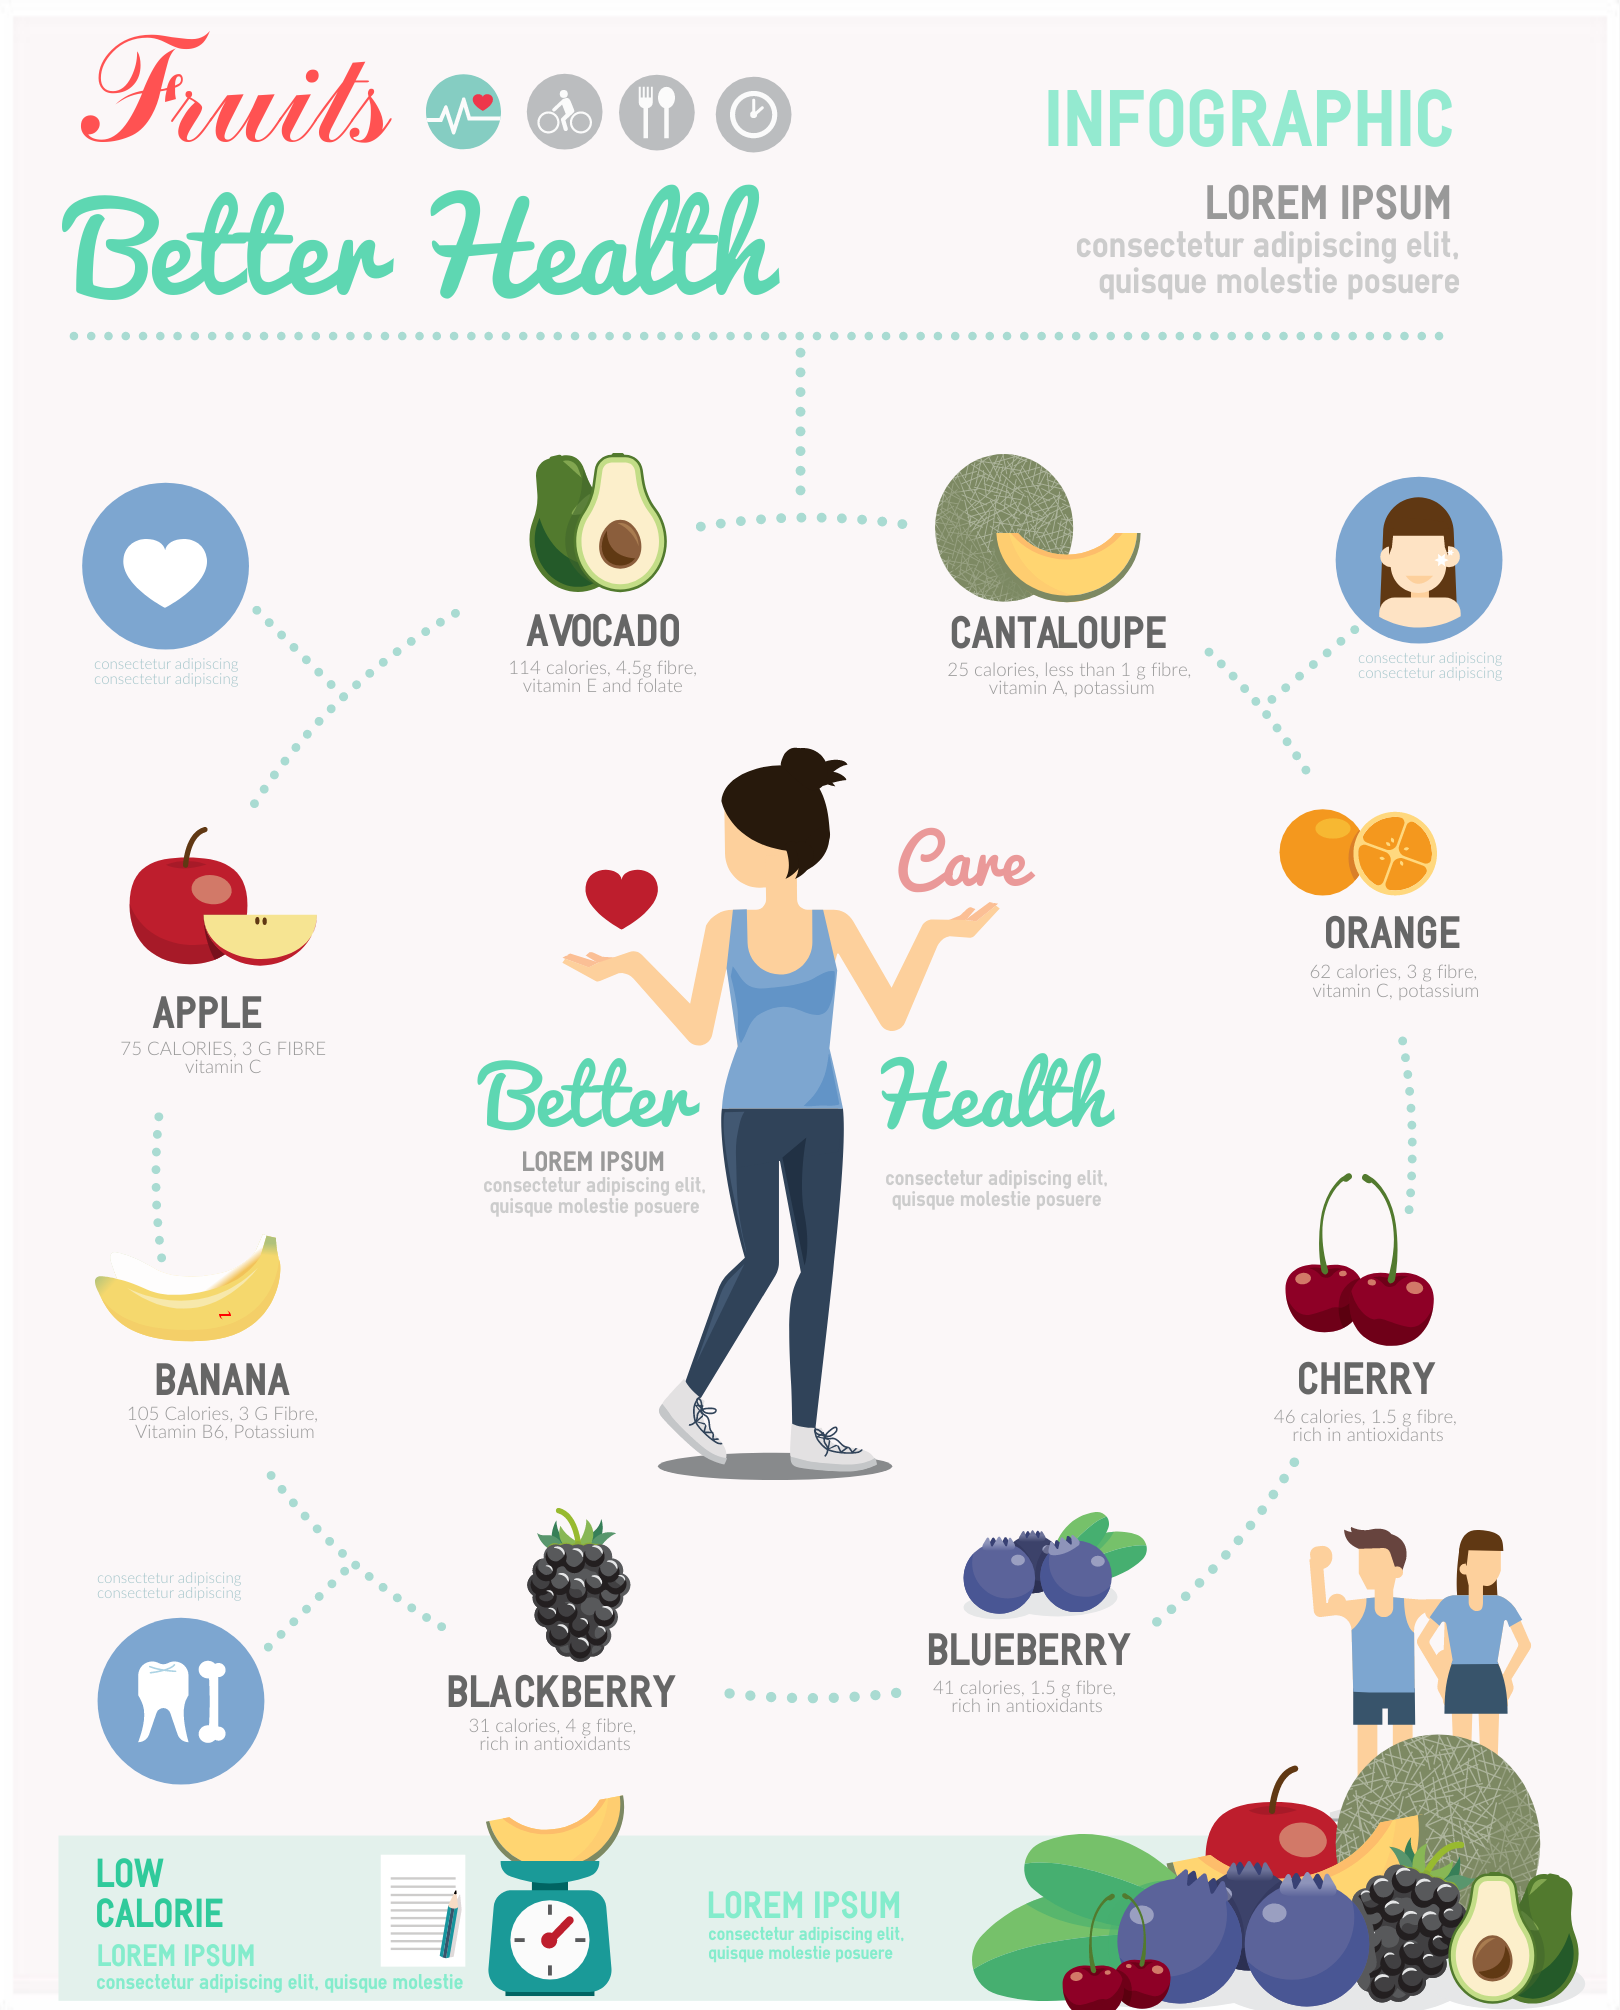 infographic about fruits.